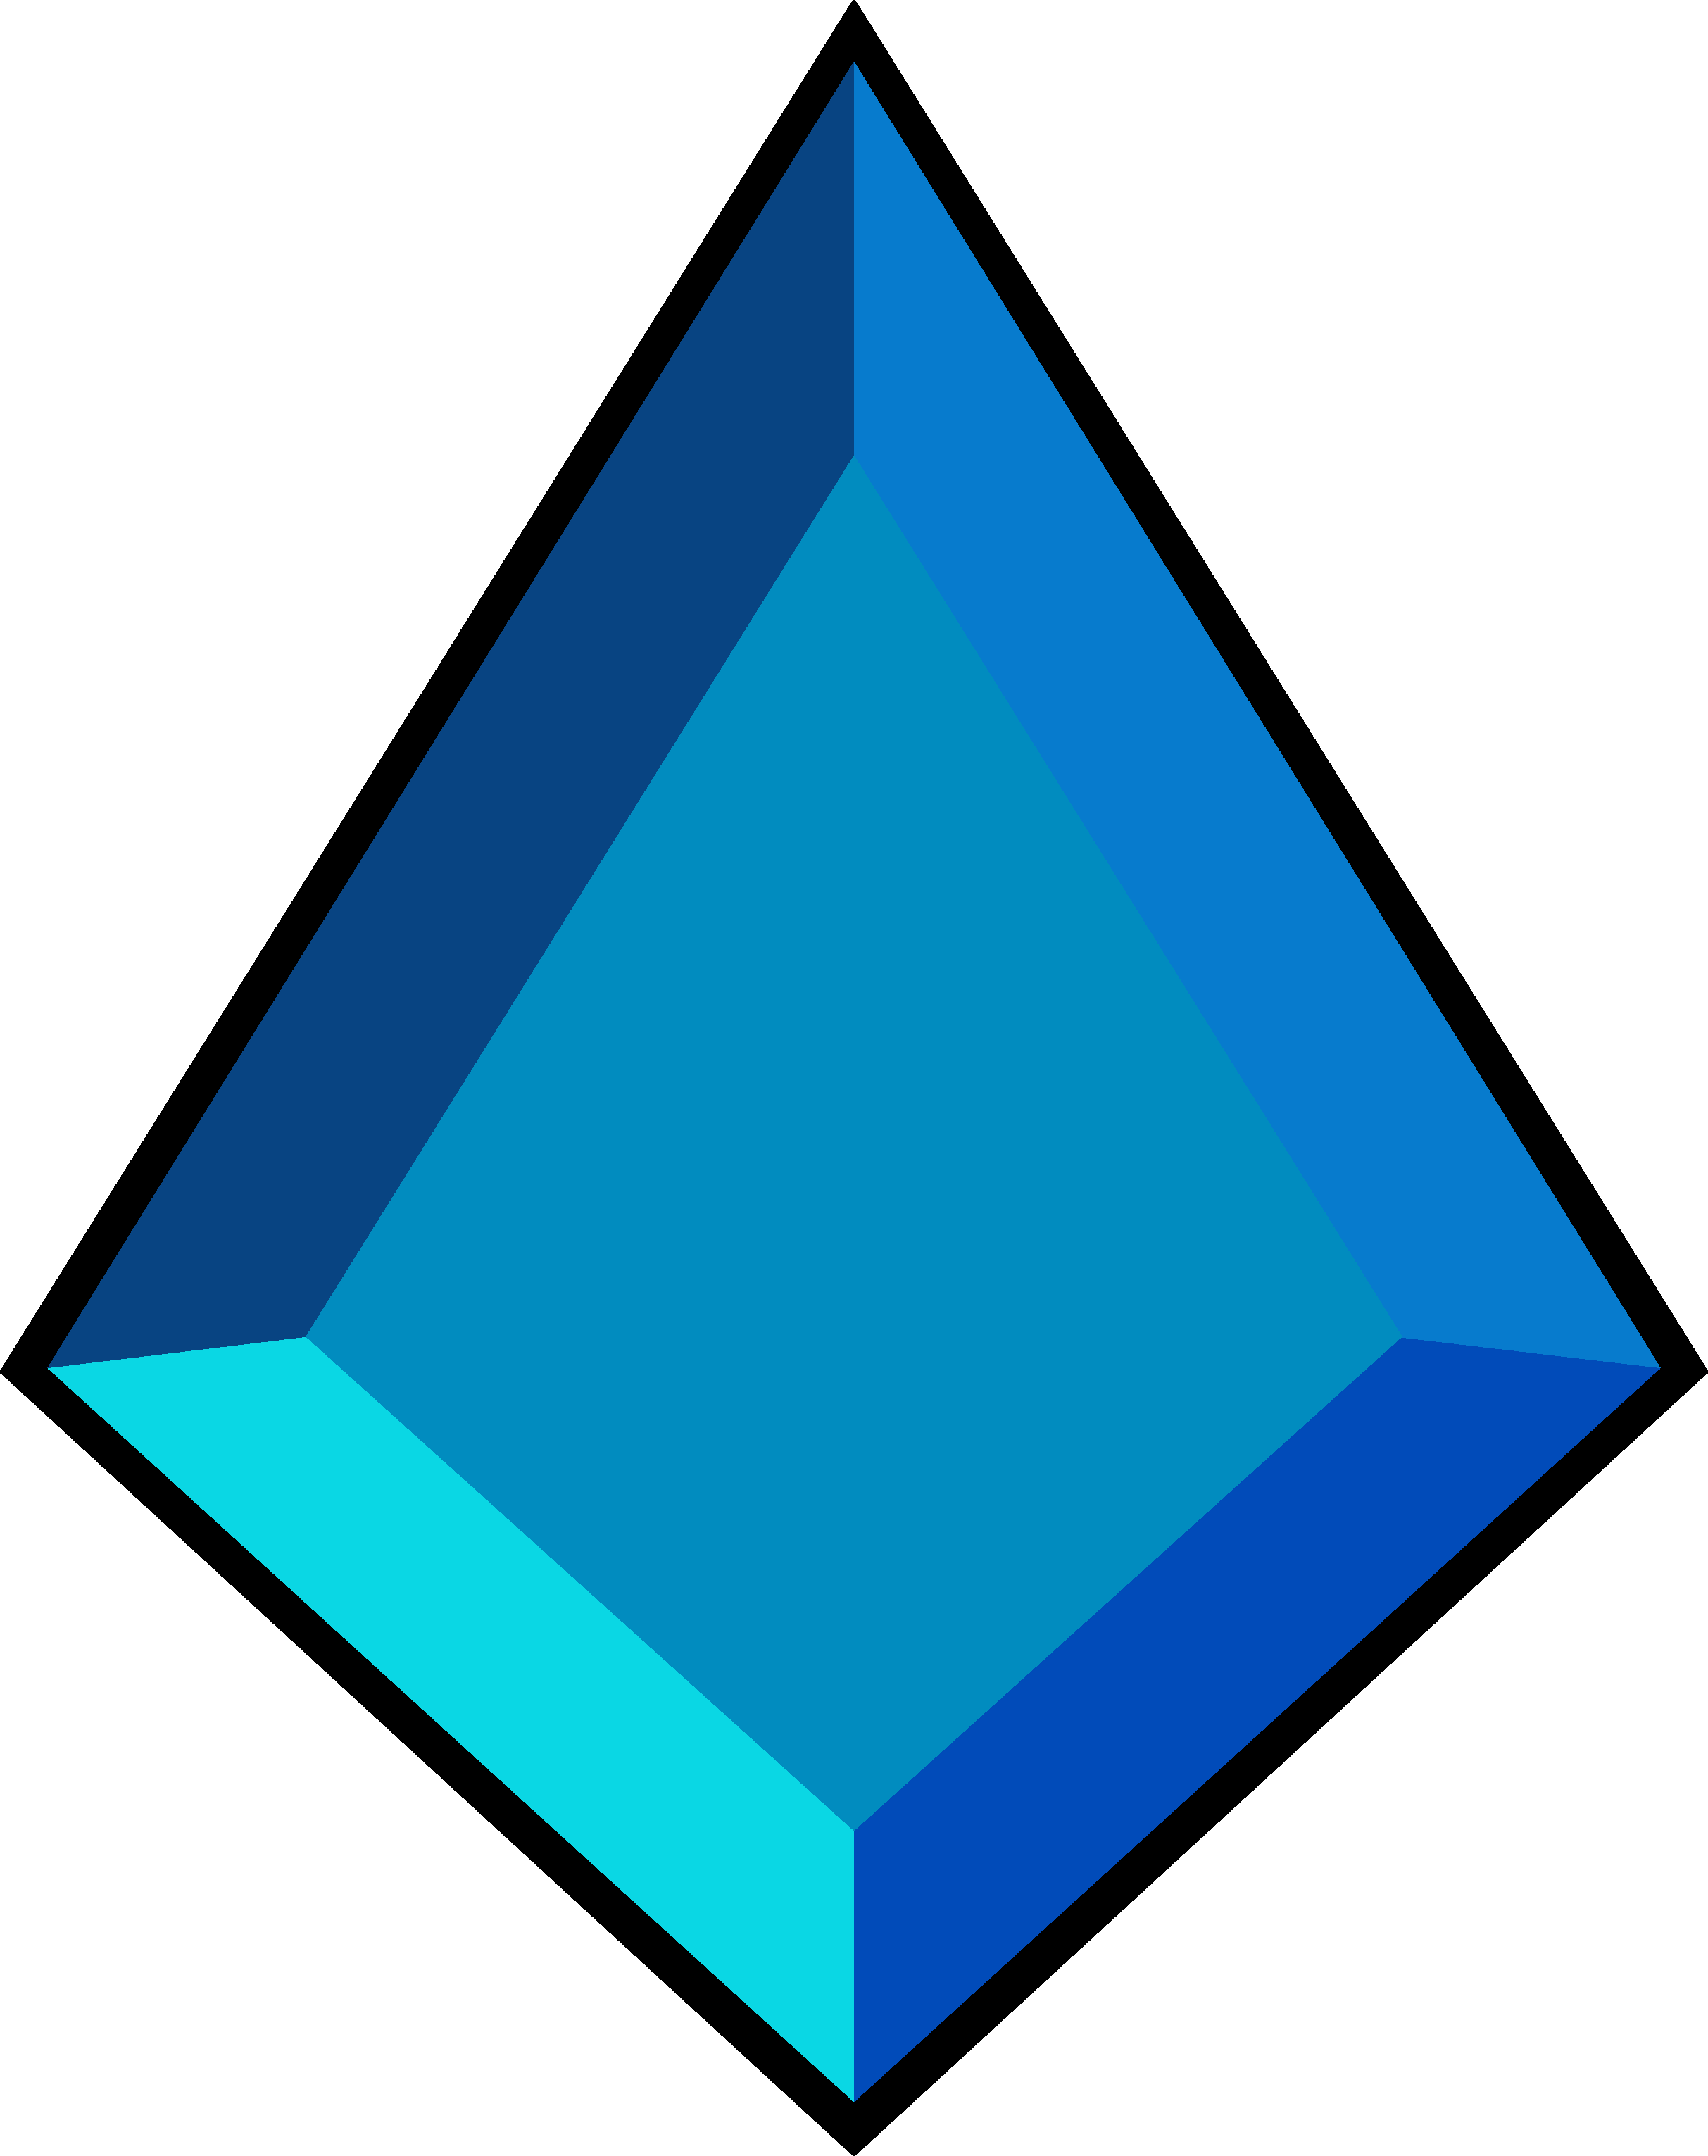 Blue diamond steven universe wiki fandom powered by wikia blue diamonds gemstone is located on her chest it has a kite diamond shaped facet geenschuldenfo Images